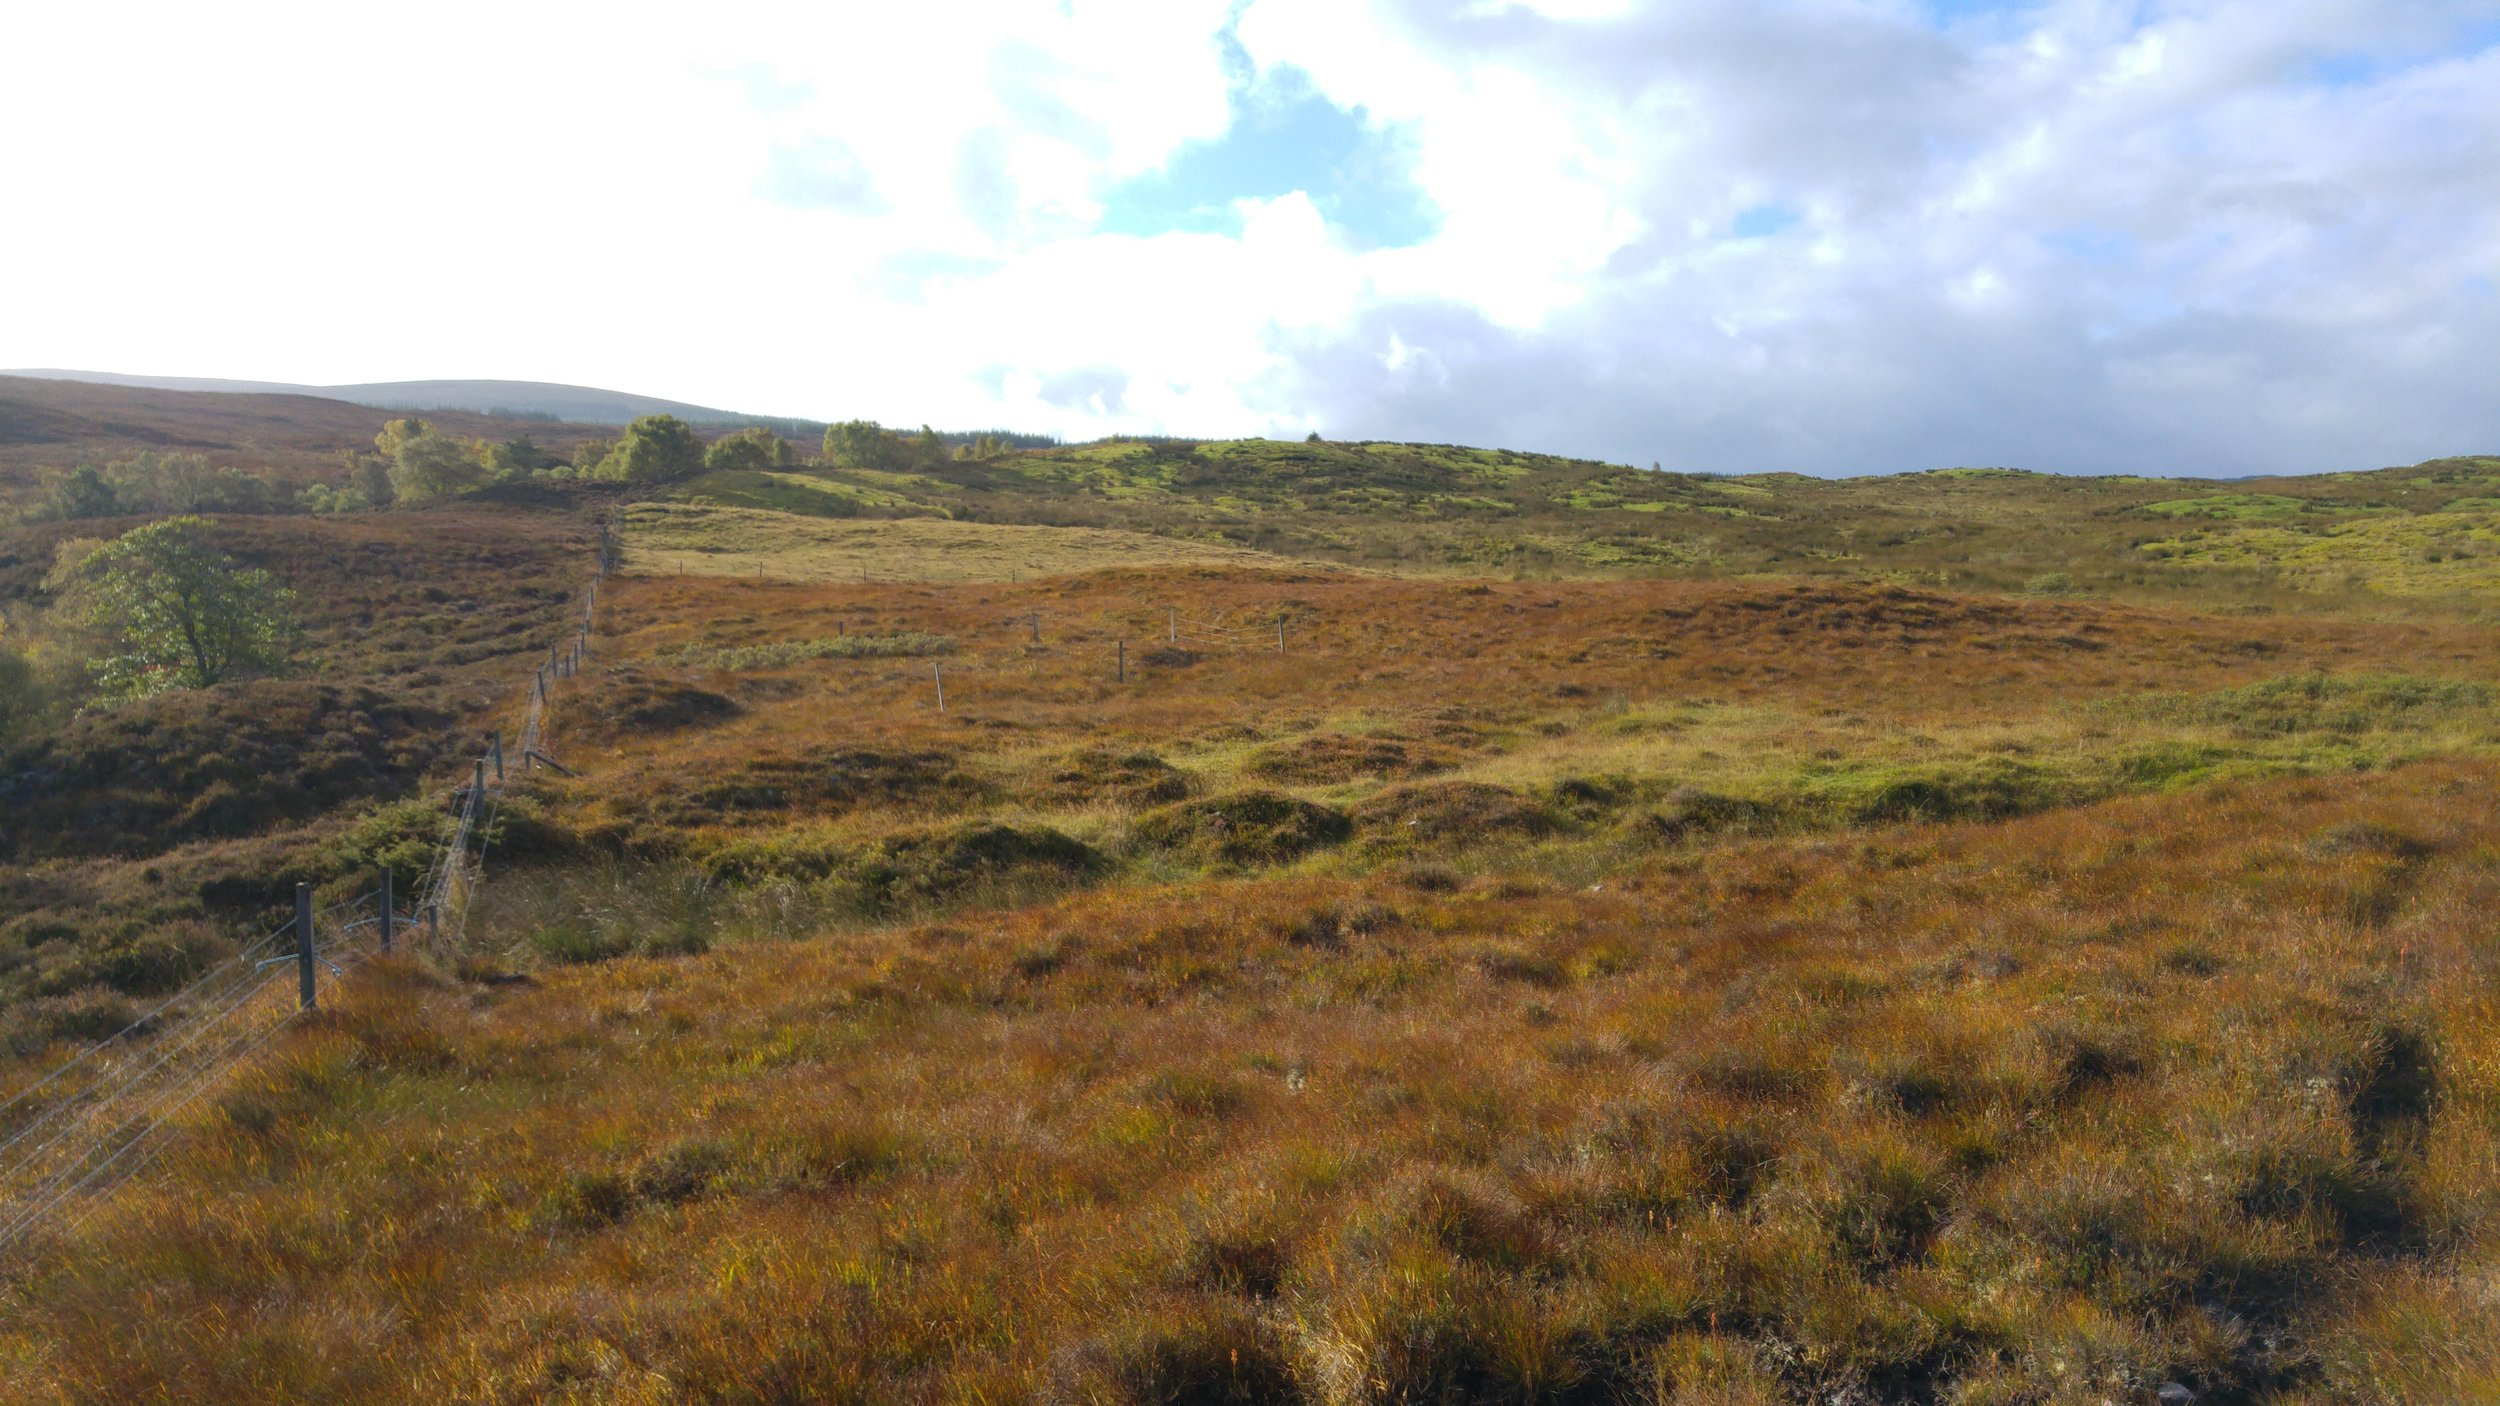 This picture shows some of the lower ground that I was surveying. It is interesting because the underlying geology and the soil conditions are the same - broadly speaking - in all areas that appear in the photo, yet the vegetation cover is markedly different. To the left, there is largely un-managed ground, perhaps subject to some light grazing by sheep.  The dominant vegetation cover here is heather ( Calluna vulgaris ) and there are also some stands of scattered native woodland. To the right of the stock fence the ground is unimproved, improved and semi-improved rough grassland. These areas are permanently grazed by sheep. On that side of the fence, the brown grass in the foreground is Deer grass ( Trichophorum germanicum ) and it is the dominant vegetation cover where the ground has not been improved. The dark green areas on the slopes above it were improved by adding lime. This was done in the 1970s.  The improved areas were then reseeded with a commercial grass mix at the same time. Although it is difficult to see this clearly in the image, there is a small area of pale green ground to the right of the fence and immediately above the amber hues of the Deer grass. This area was limed but not reseeded, so the sward is unimproved and consists mainly of the rough grasses that were present at the time.